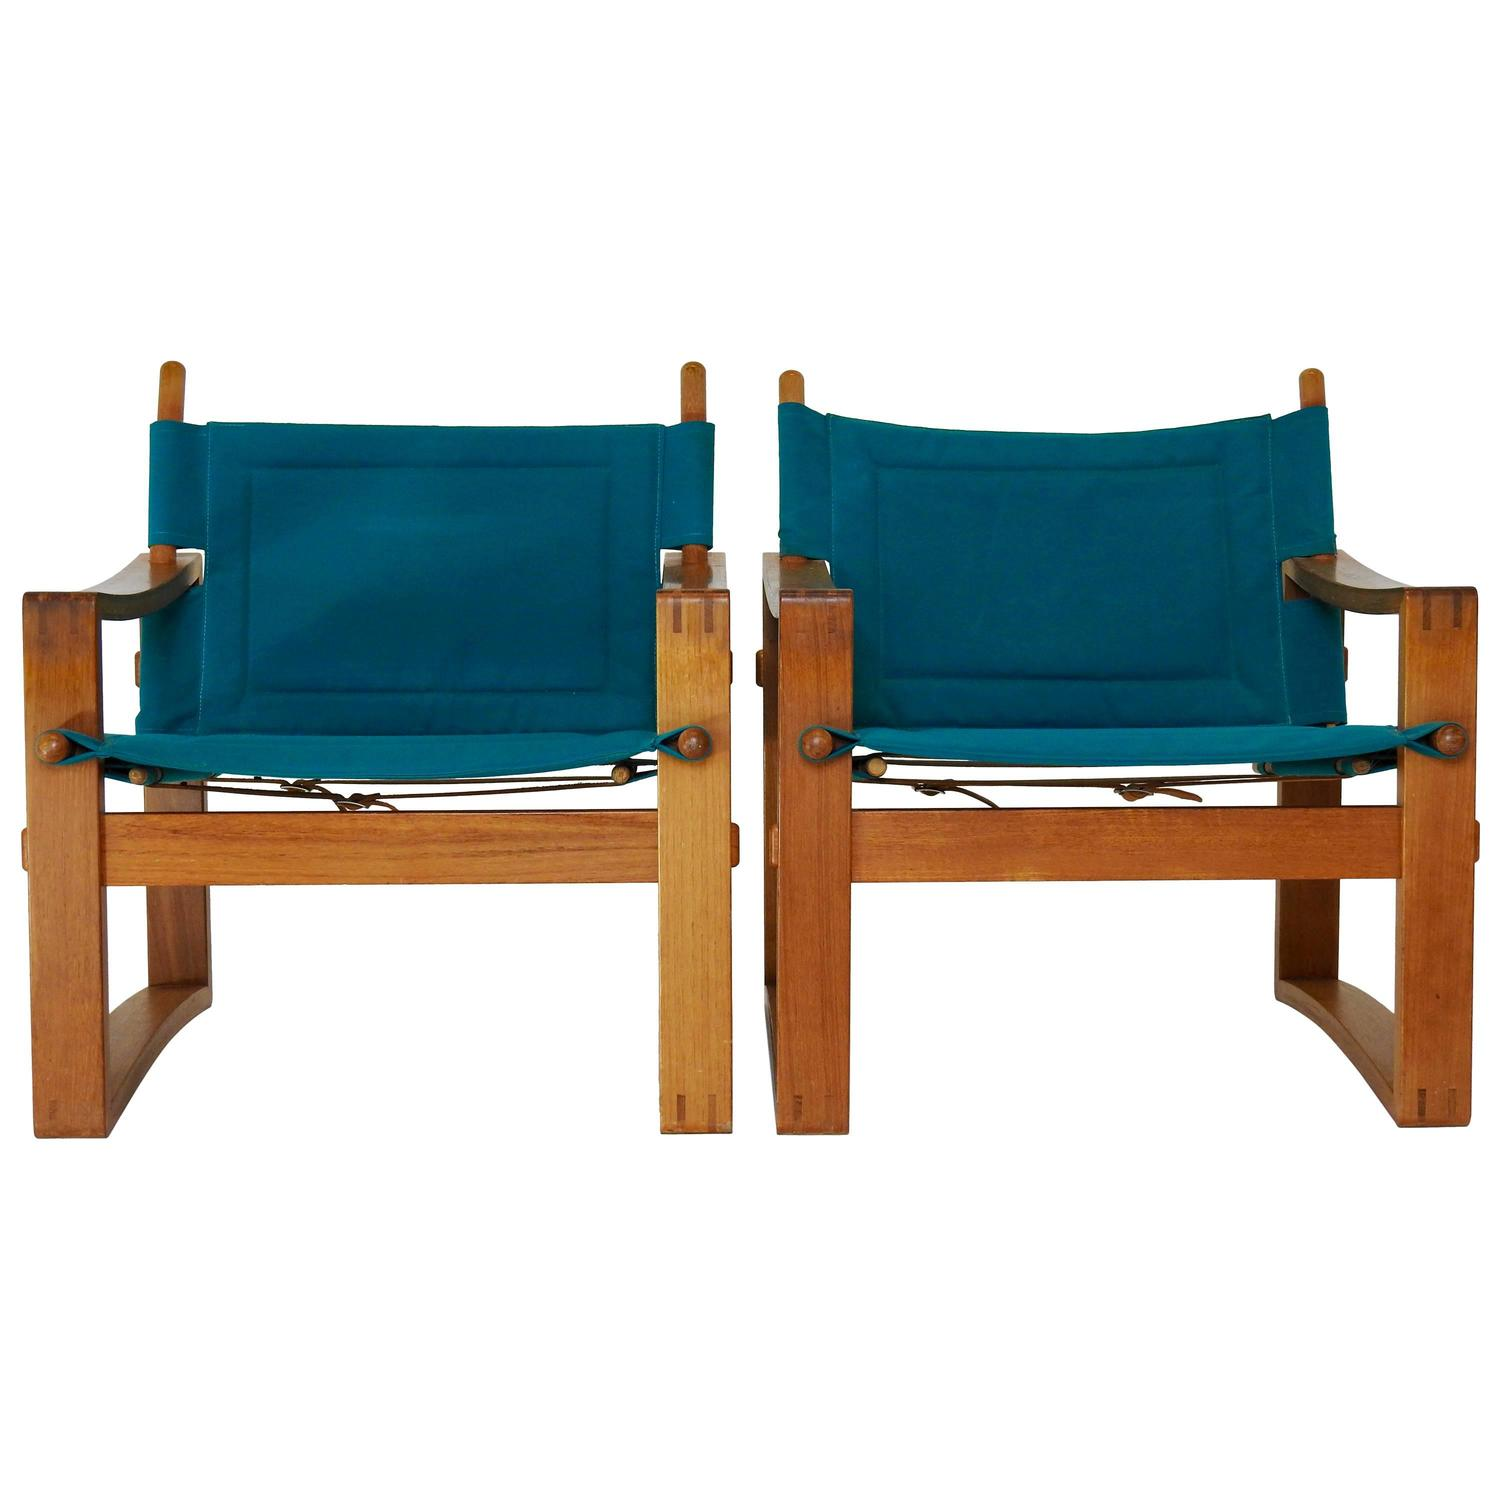 teal lounge chair oak spindle back dining chairs pair of mid century with leather straps